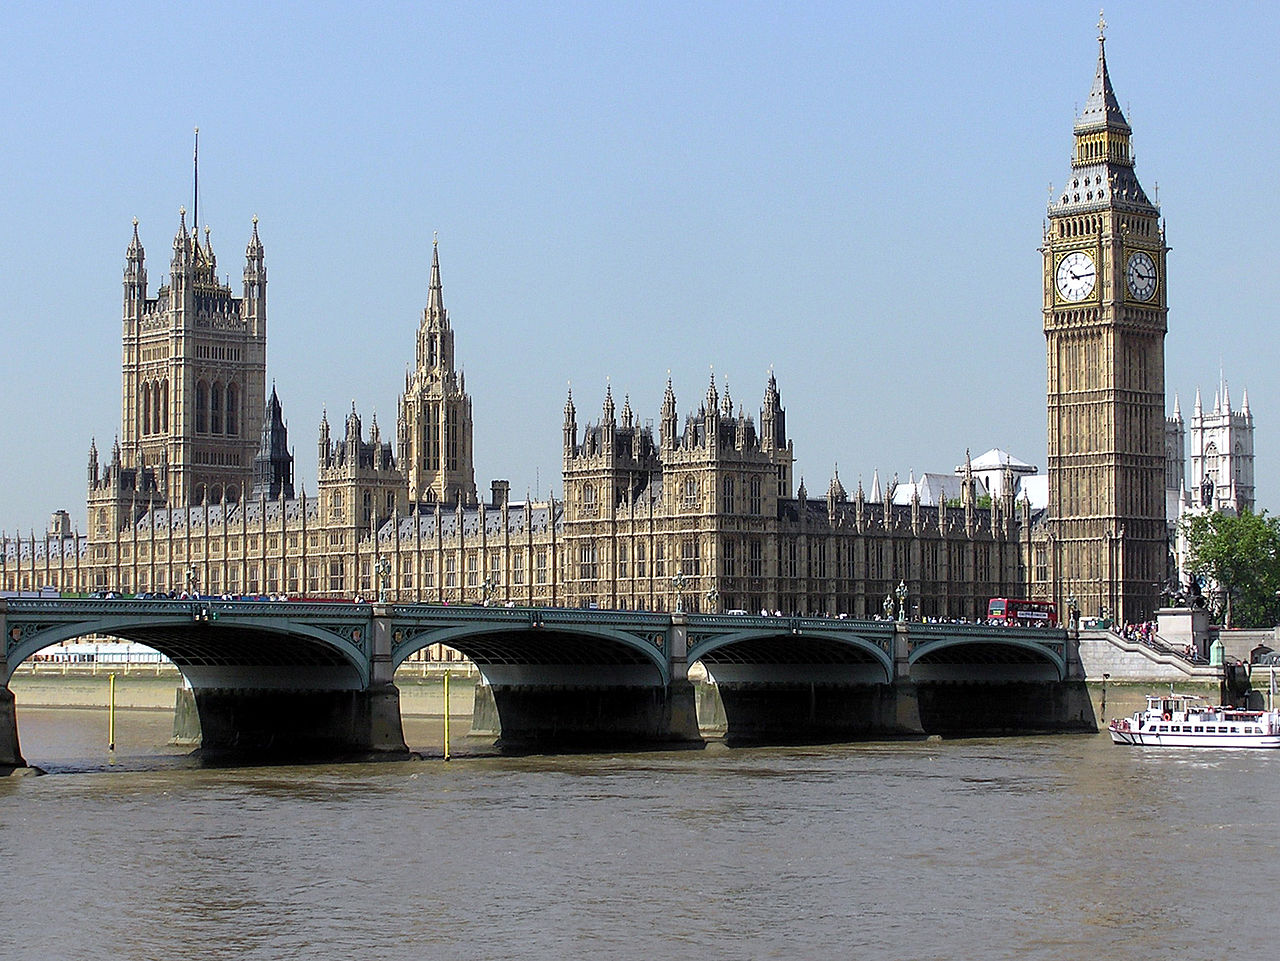 The committee submitted their recommendations to the House of Commons.